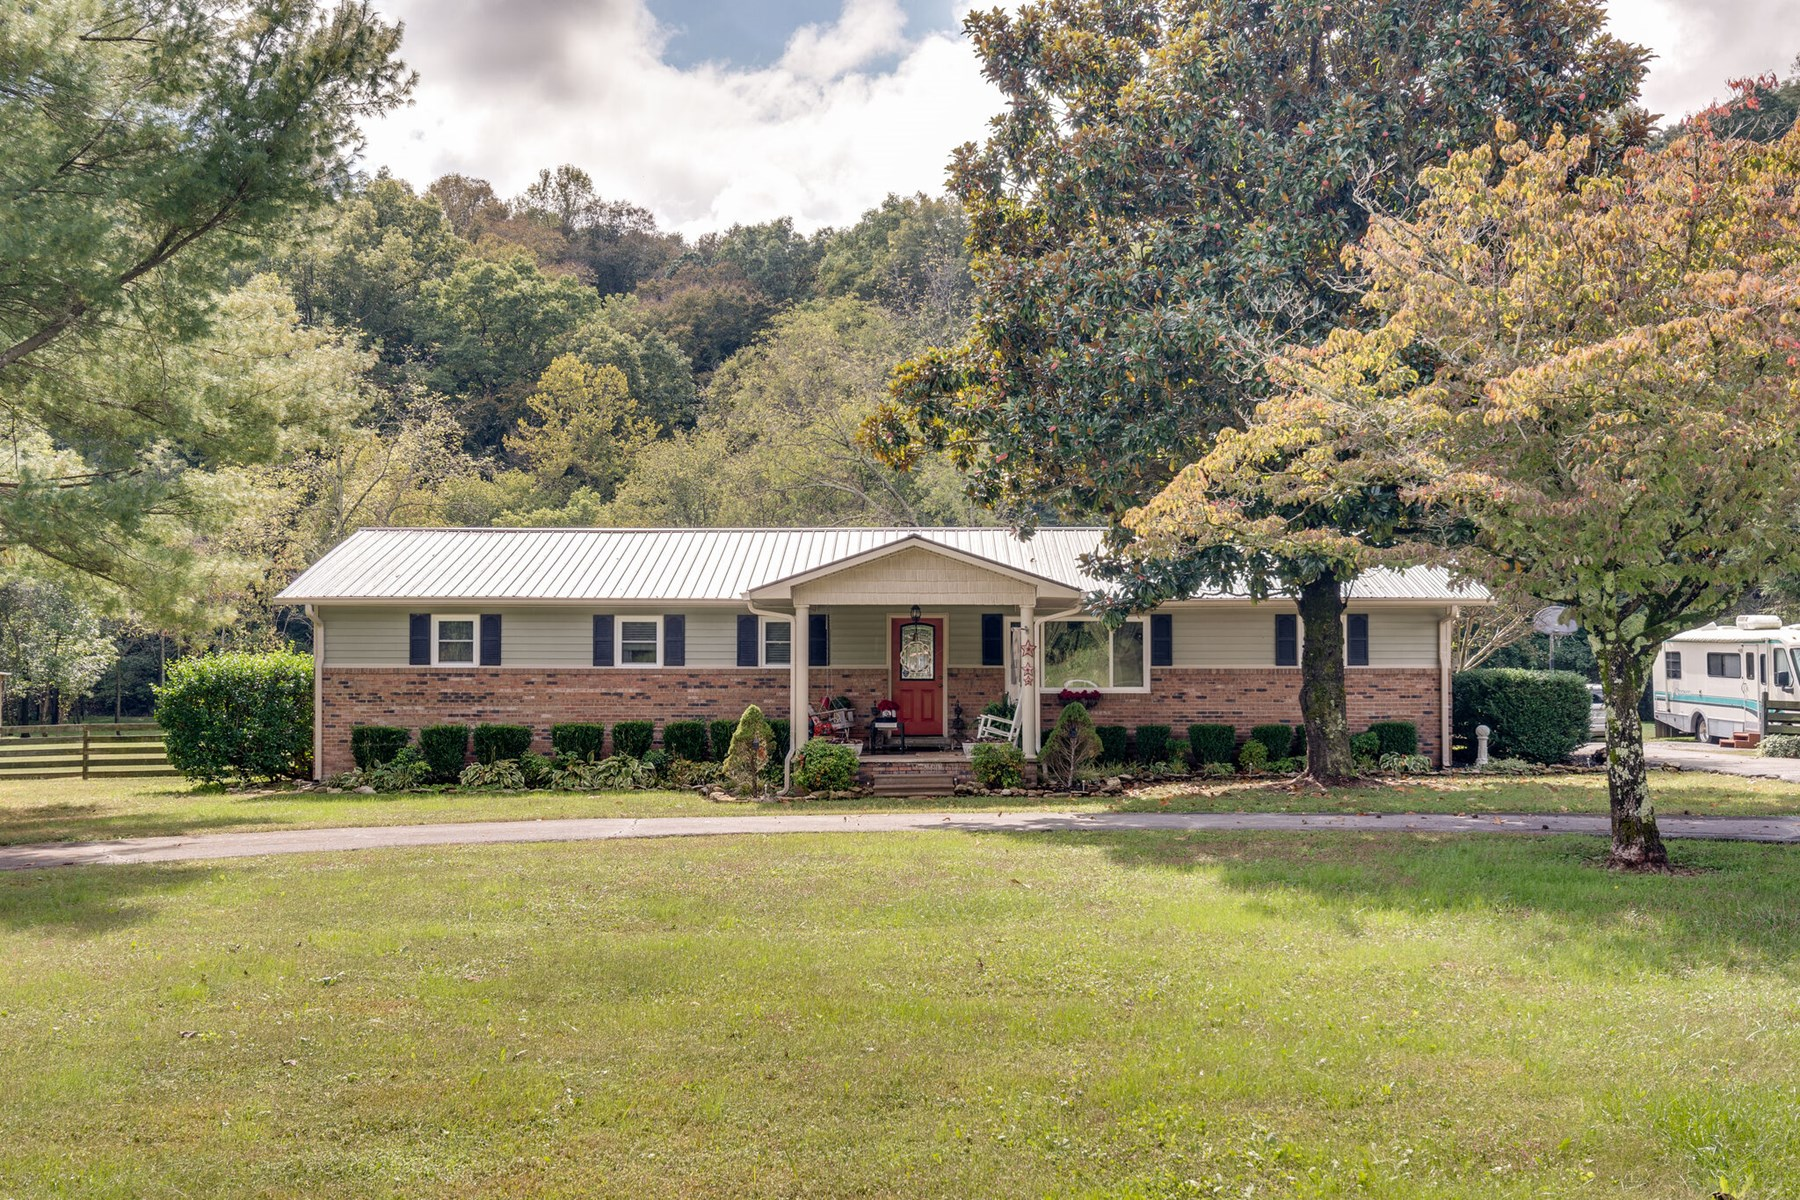 Country Home with Acreage for Sale in Ethridge, Tennessee